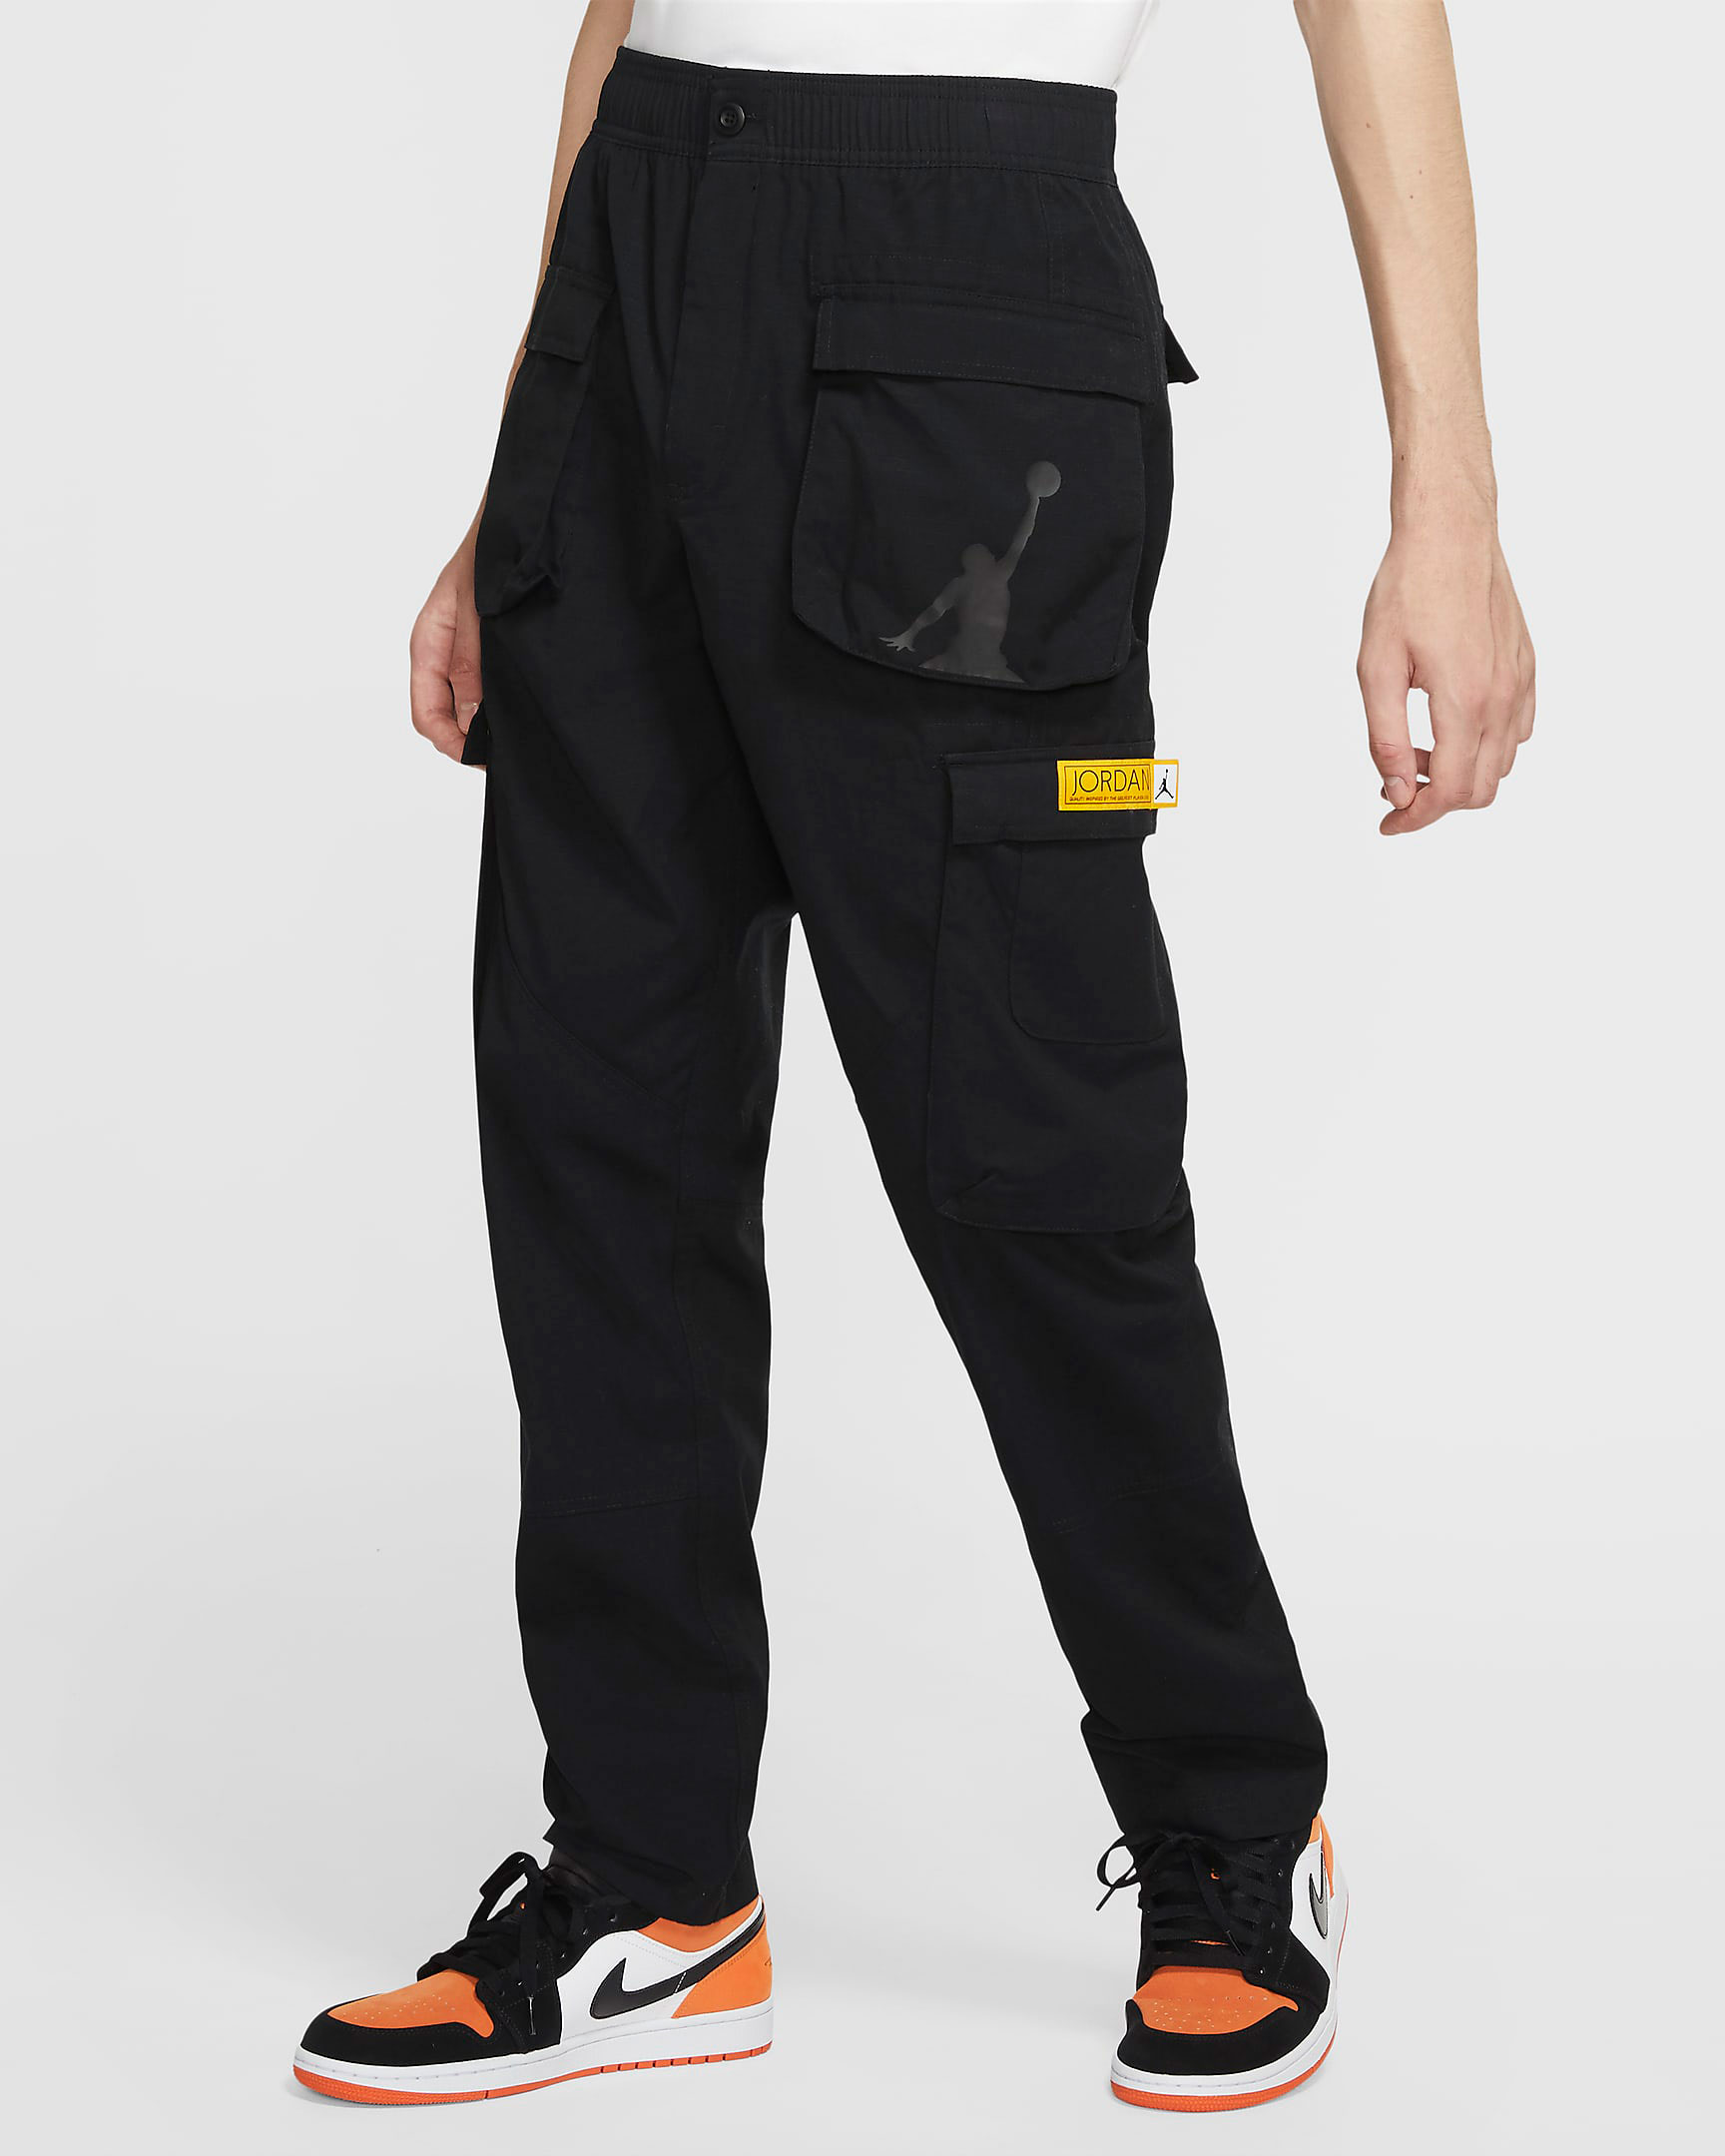 jordan-cargo-pants-black-university-gold